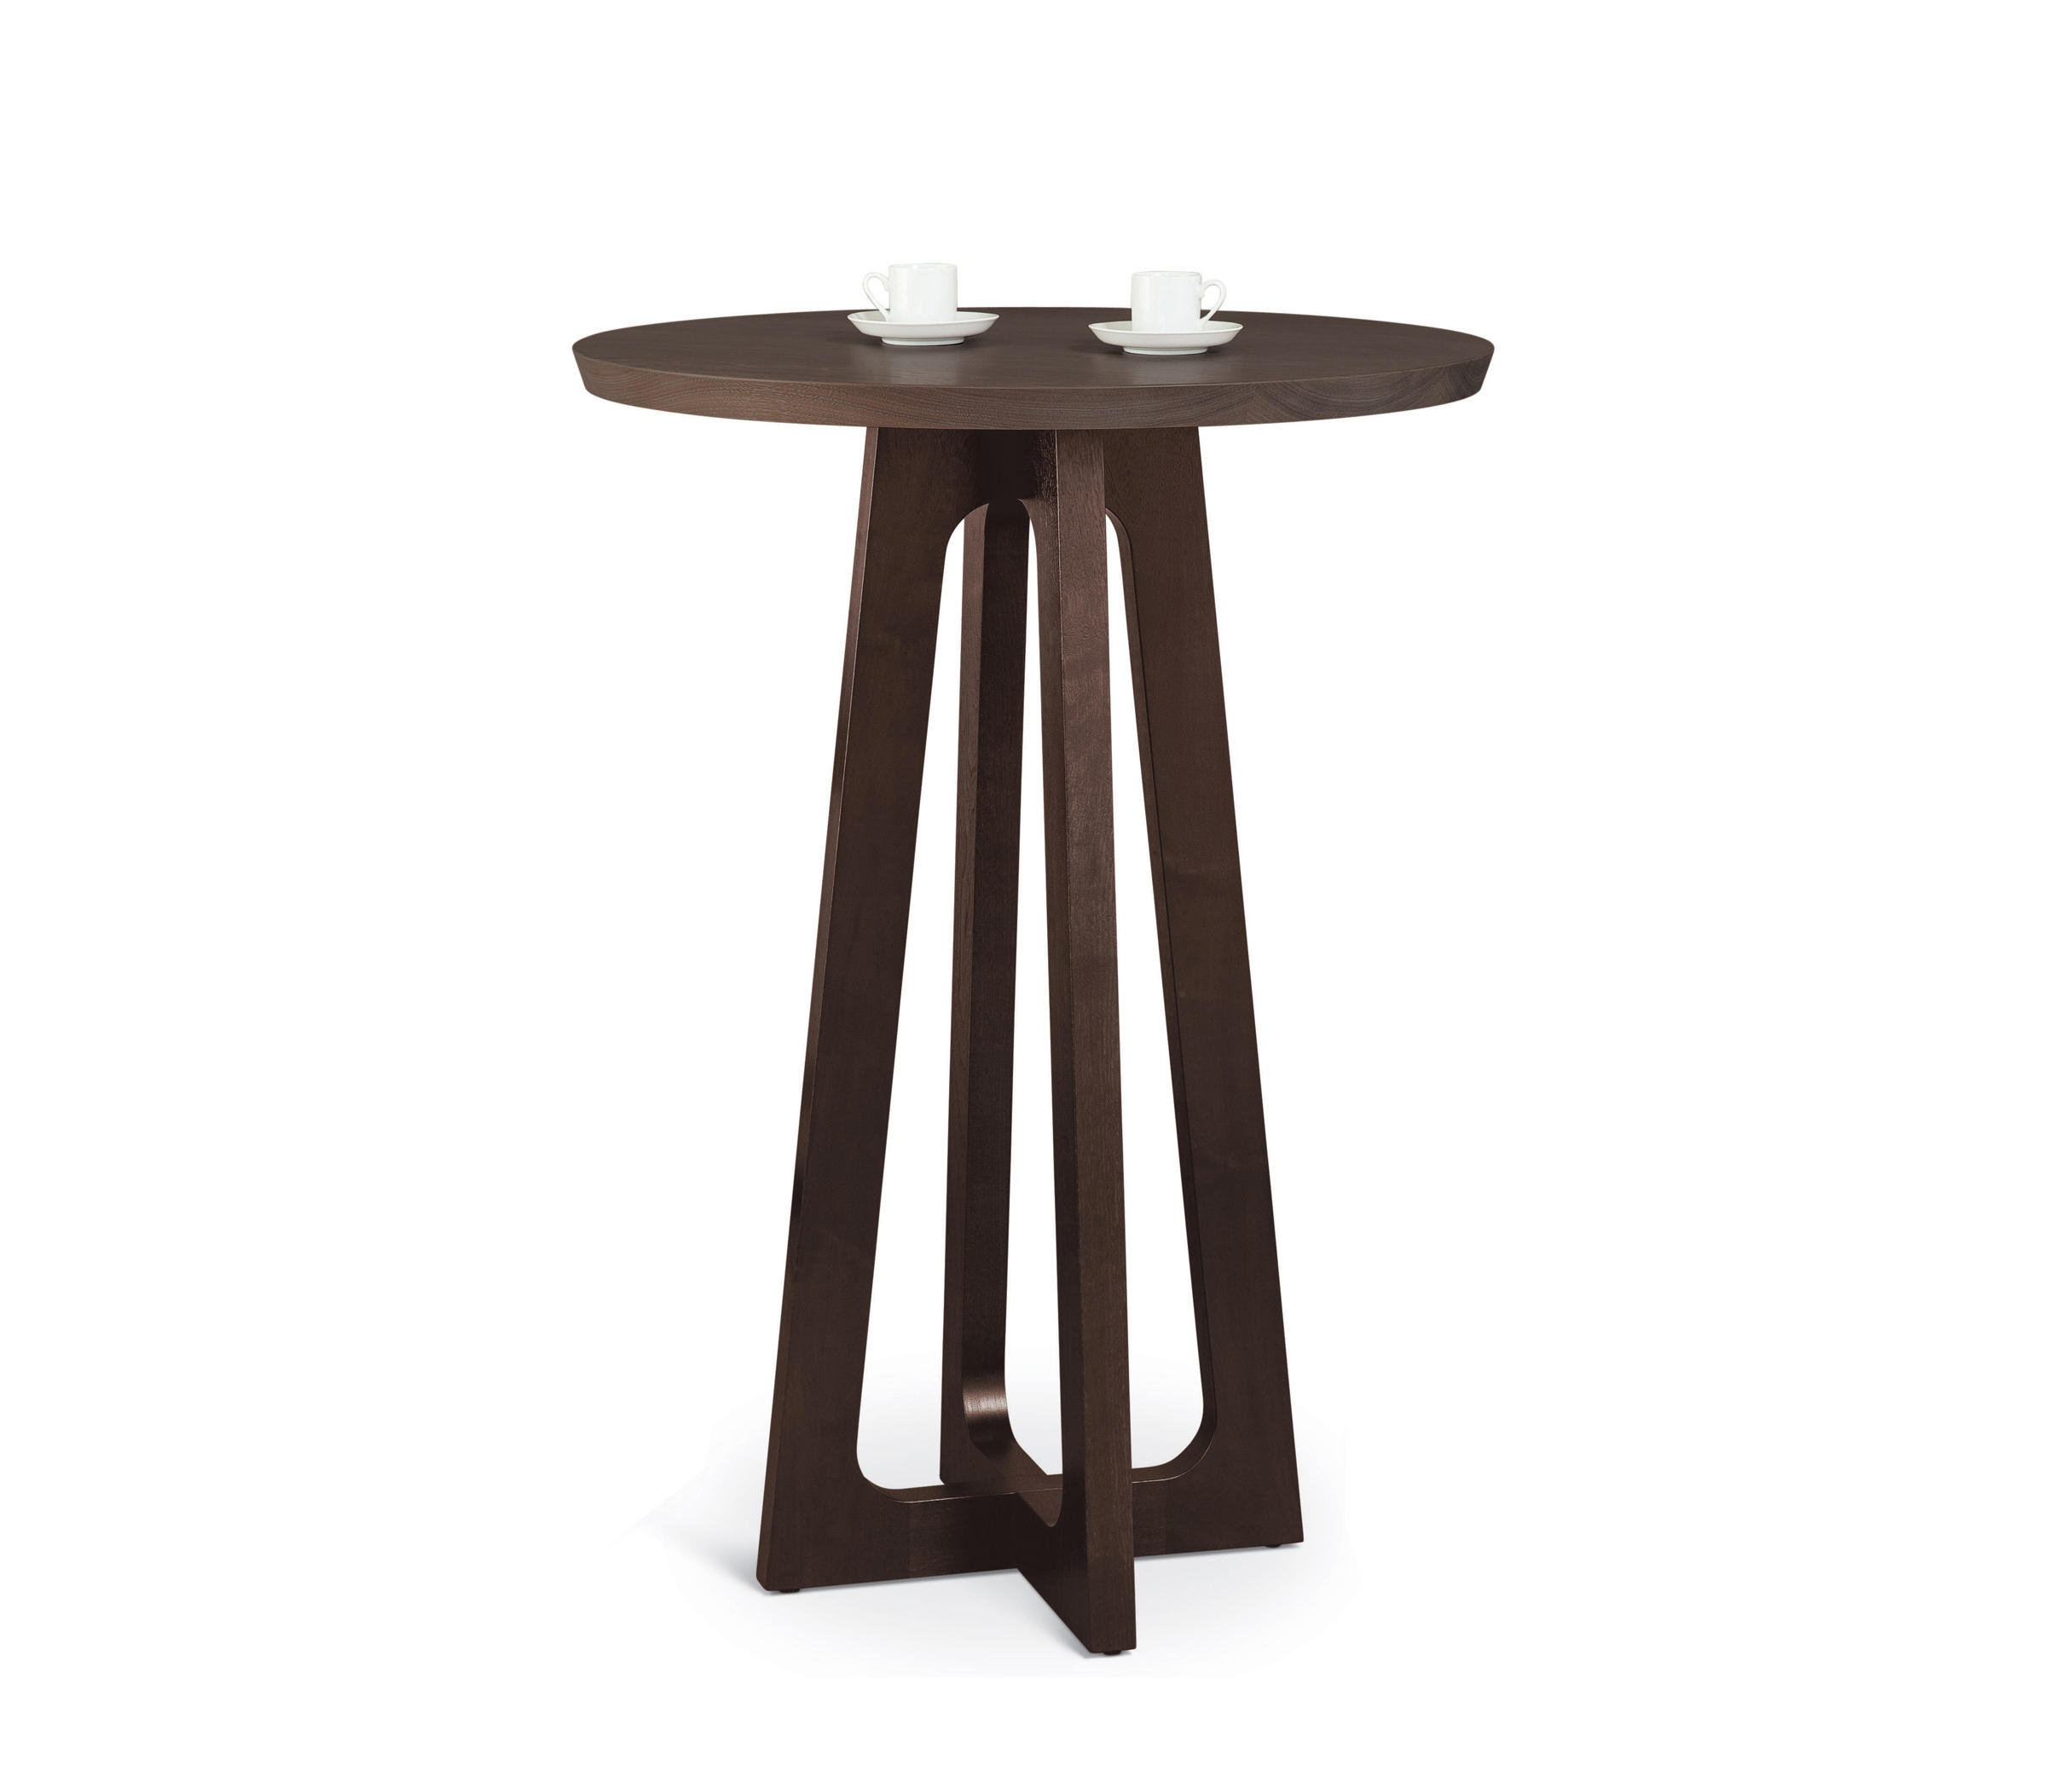 VERONA CAFÉ TABLE Standing Tables From Altura Furniture Architonic - Standing cafe table